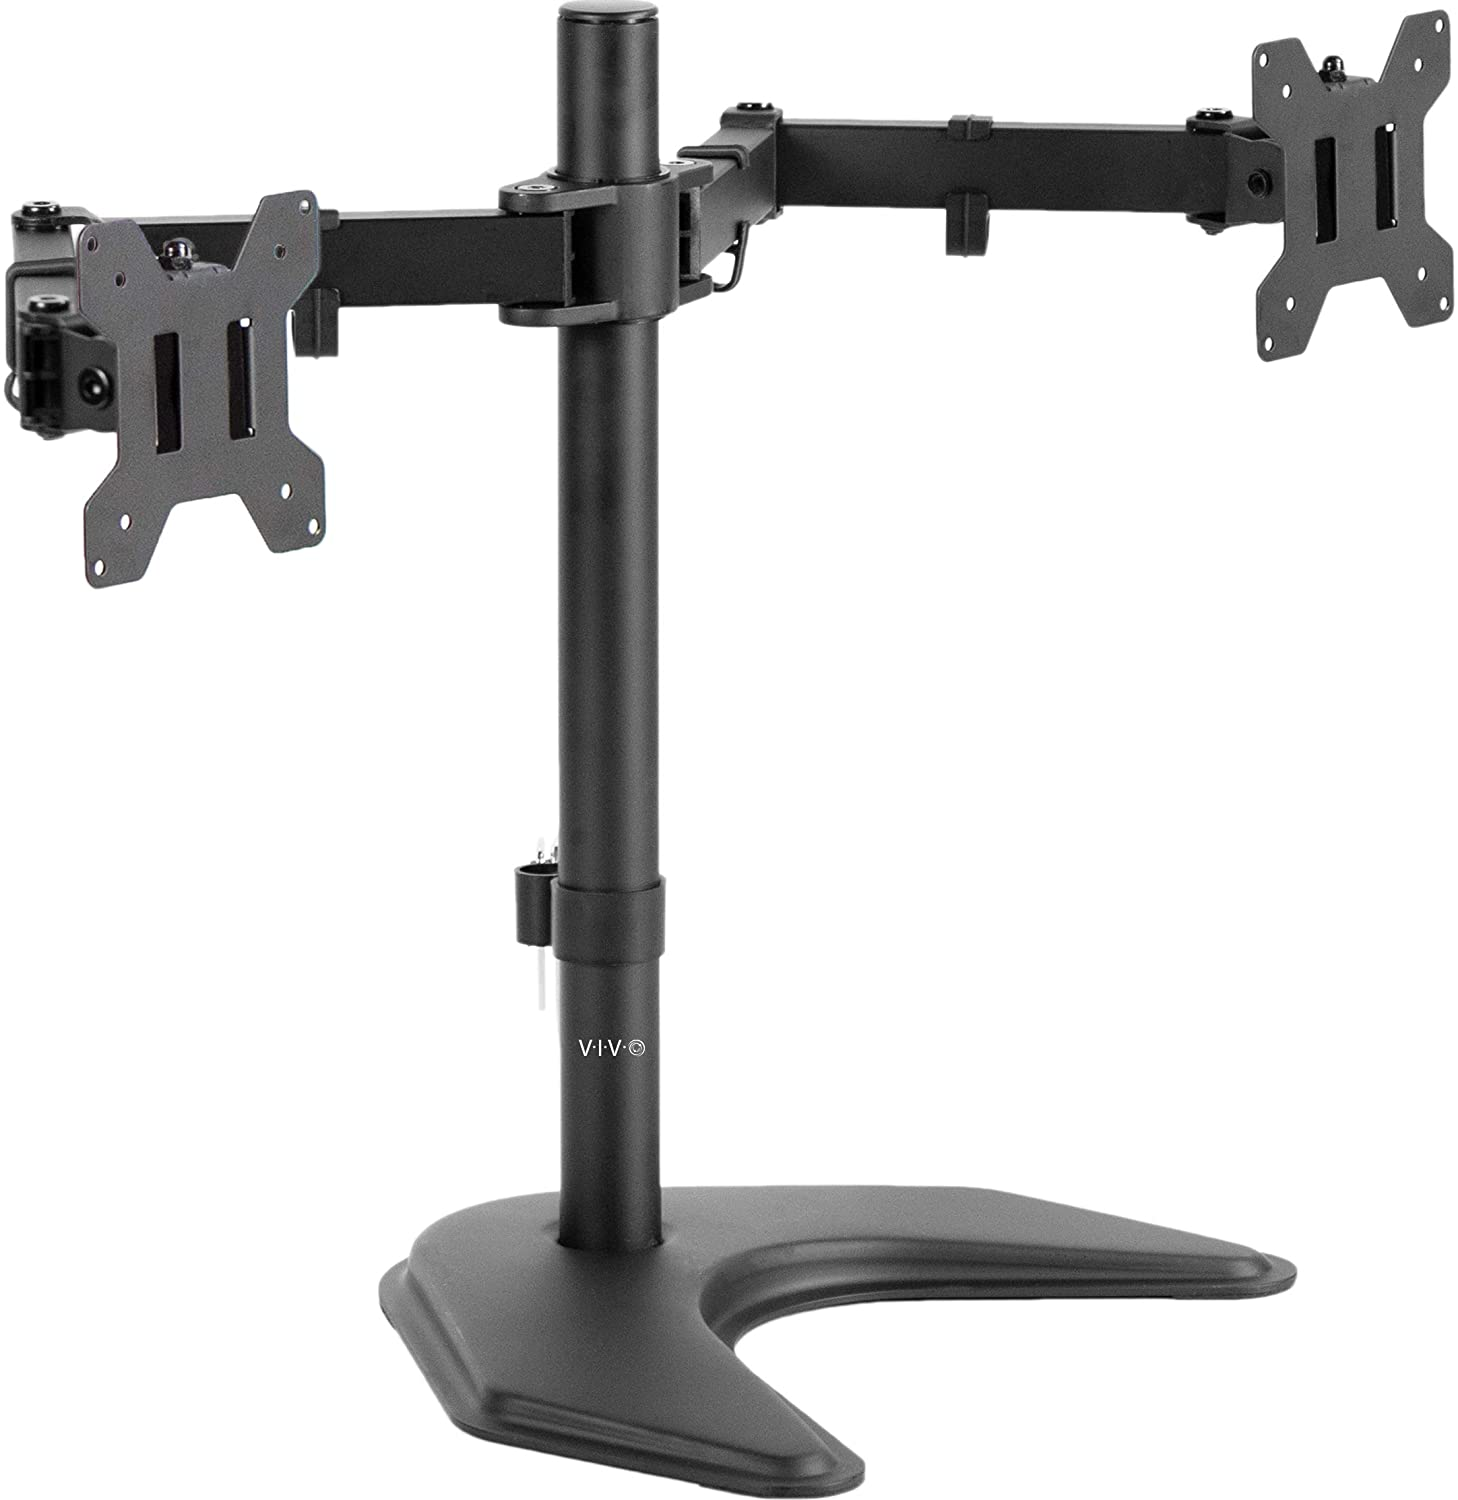 VIVO Dual LED LCD Monitor Free-Standing Desk Stand for 2 Screens up to 27 inches VESA -1